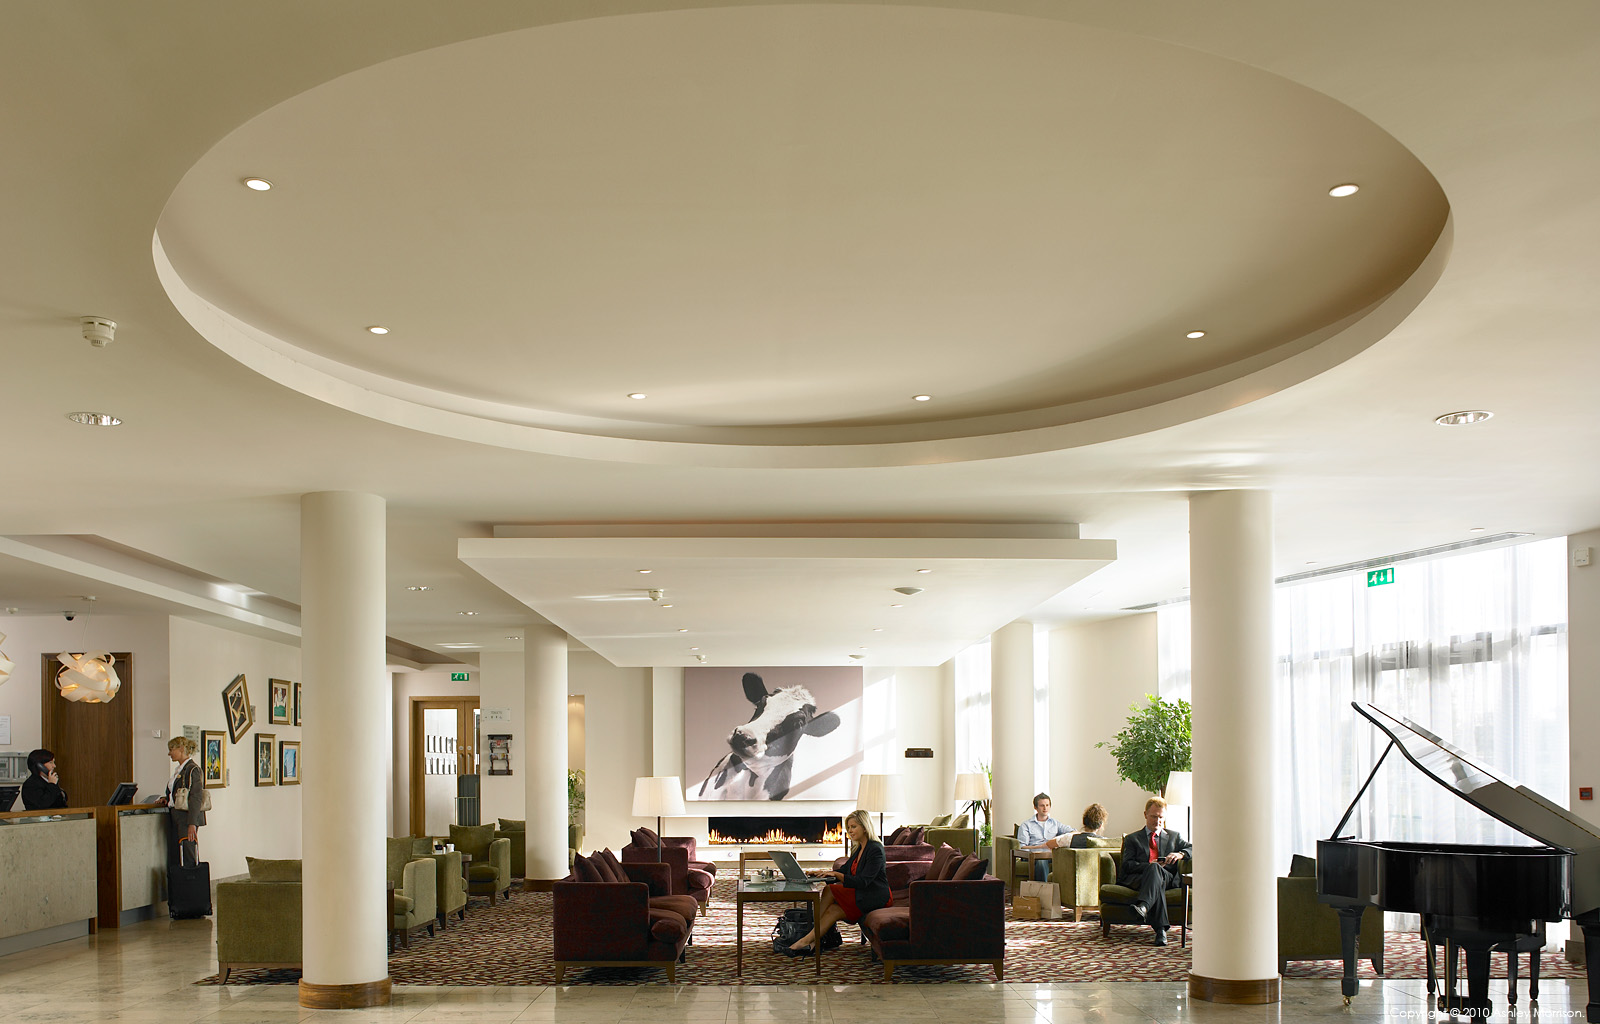 The Lobby in the CityNorth Hotel near the Irish town of Gormanston in County Meath.